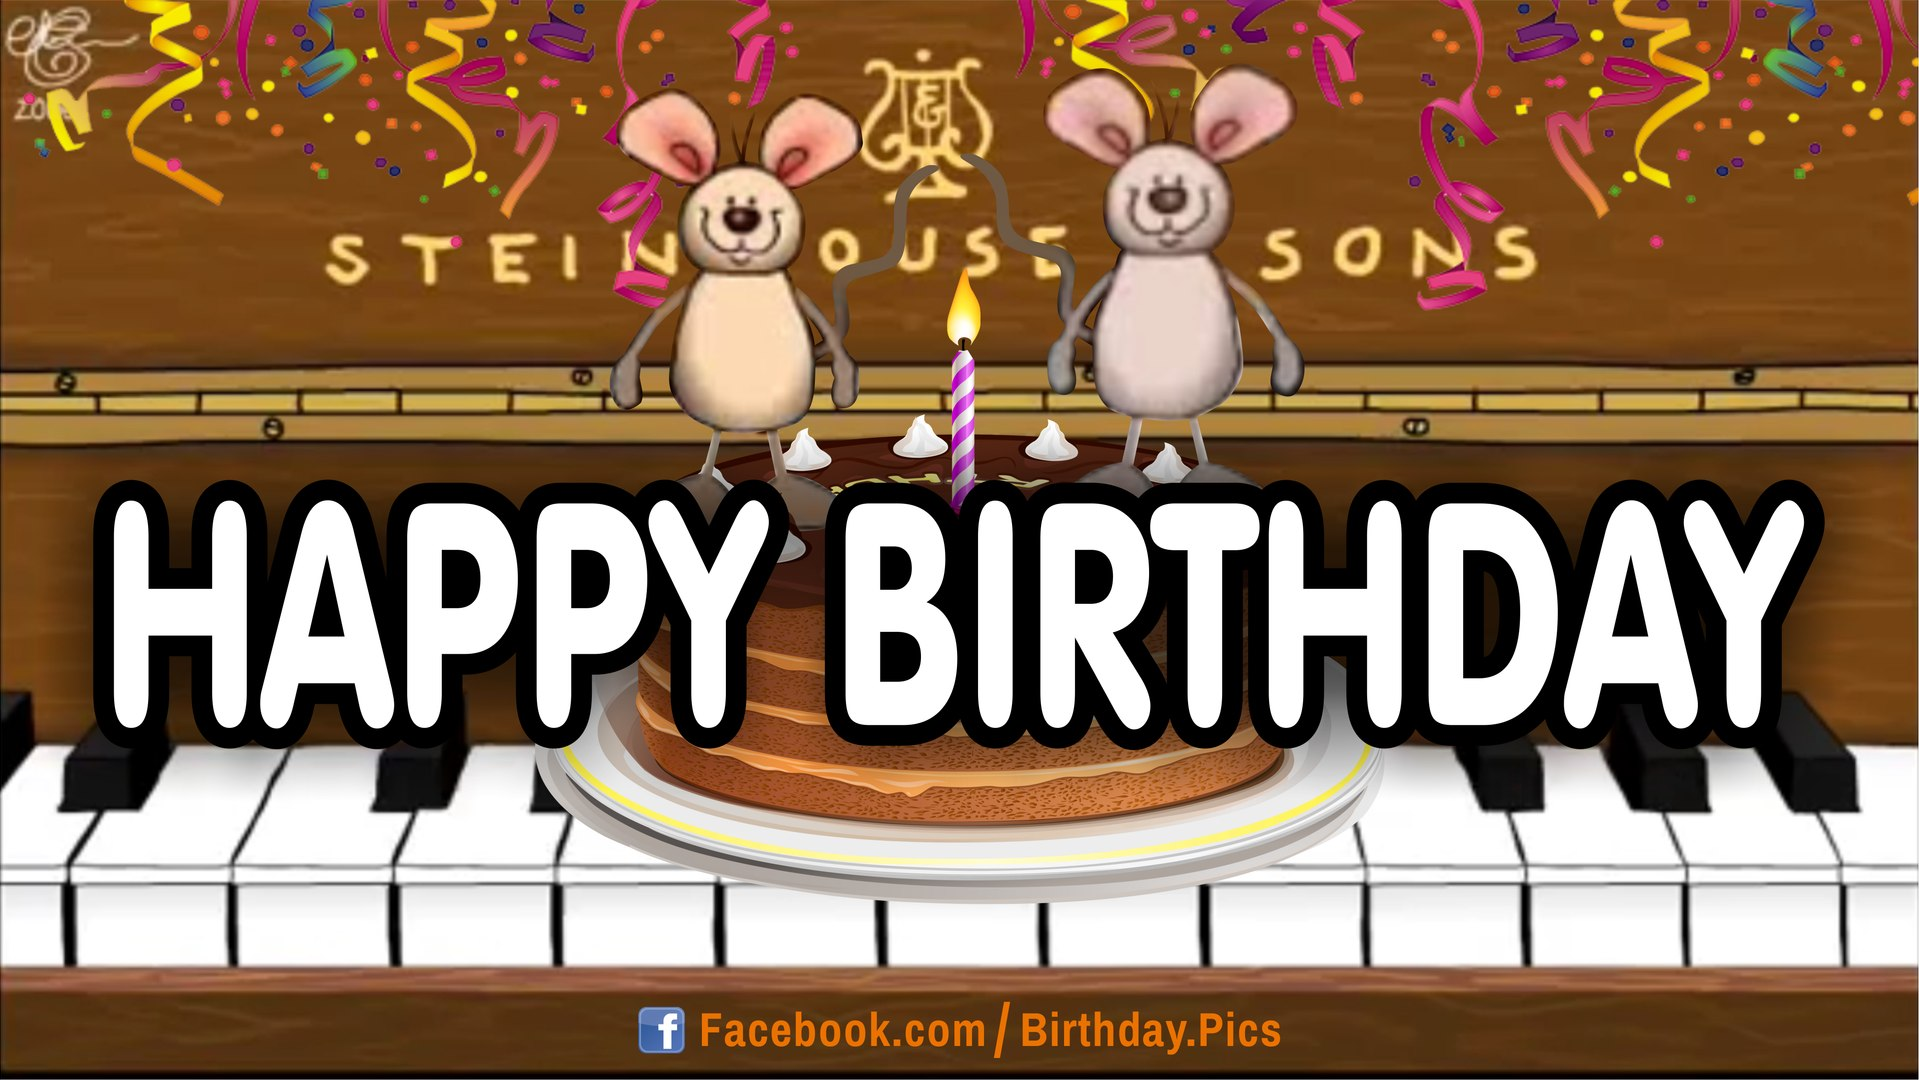 Happy Birthday Musical Mice Playing Piano